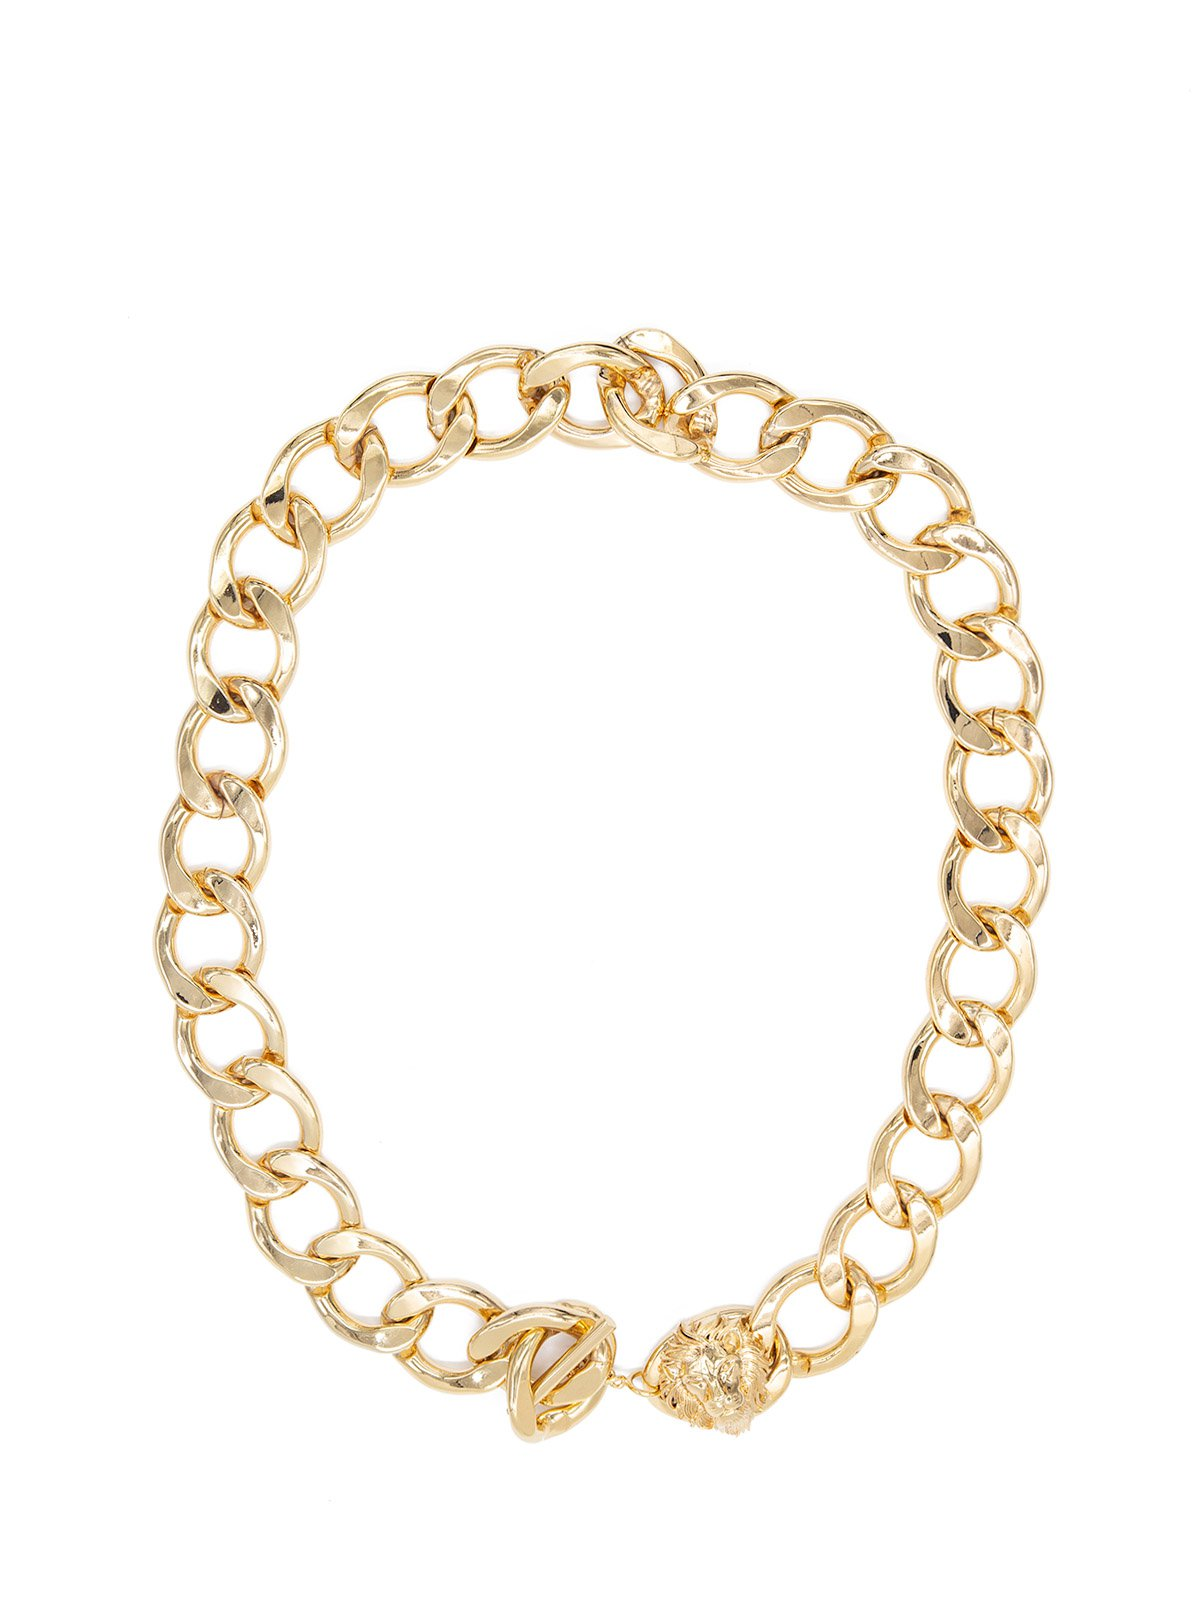 versace necklace gold - Google Search